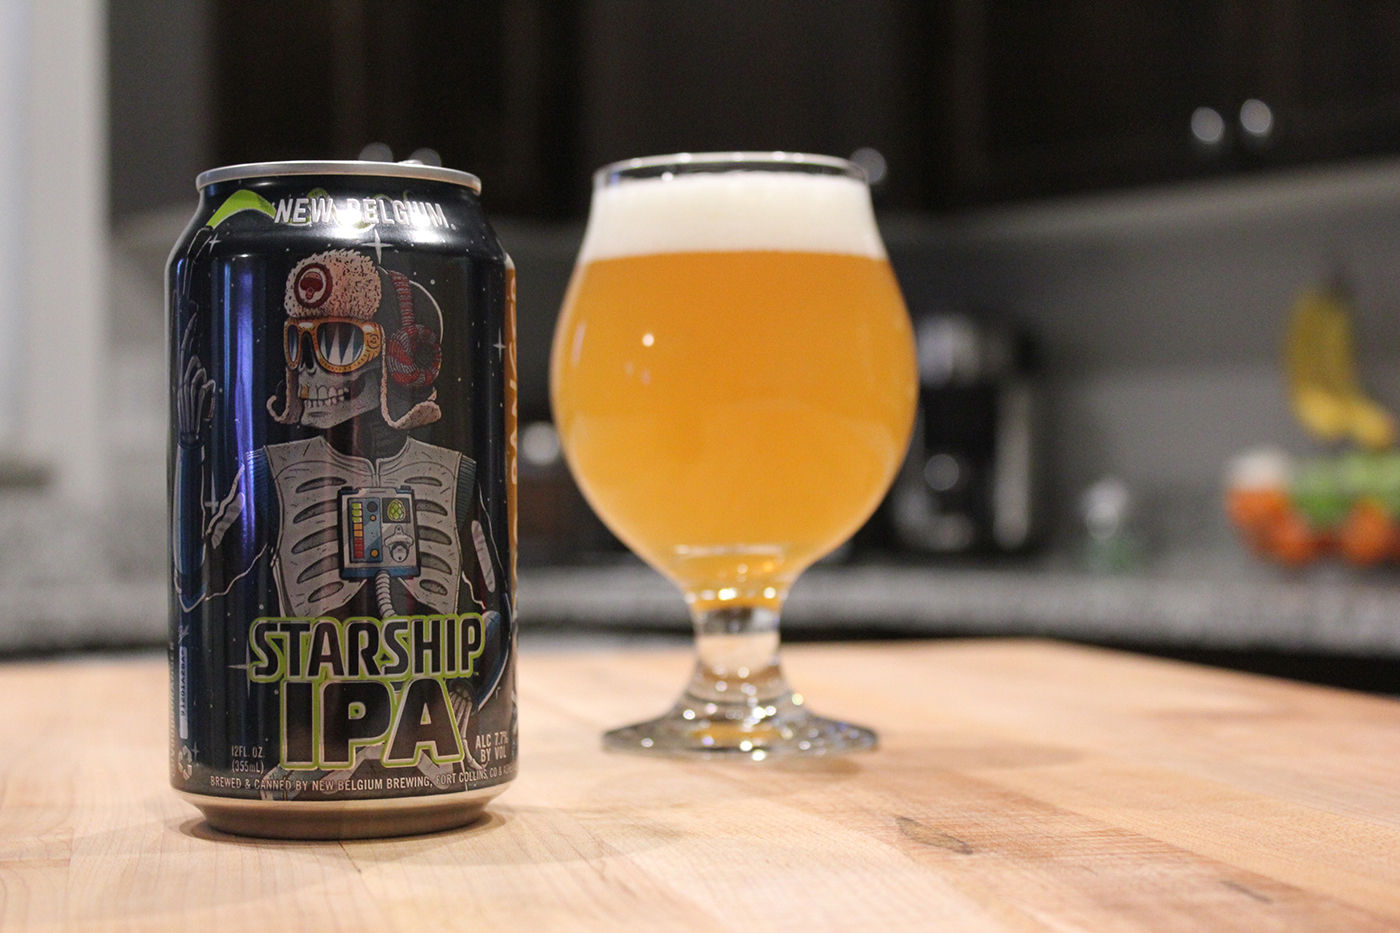 Starship IPA is New Belgium Brewing's newest member of the Voodoo Ranger family.